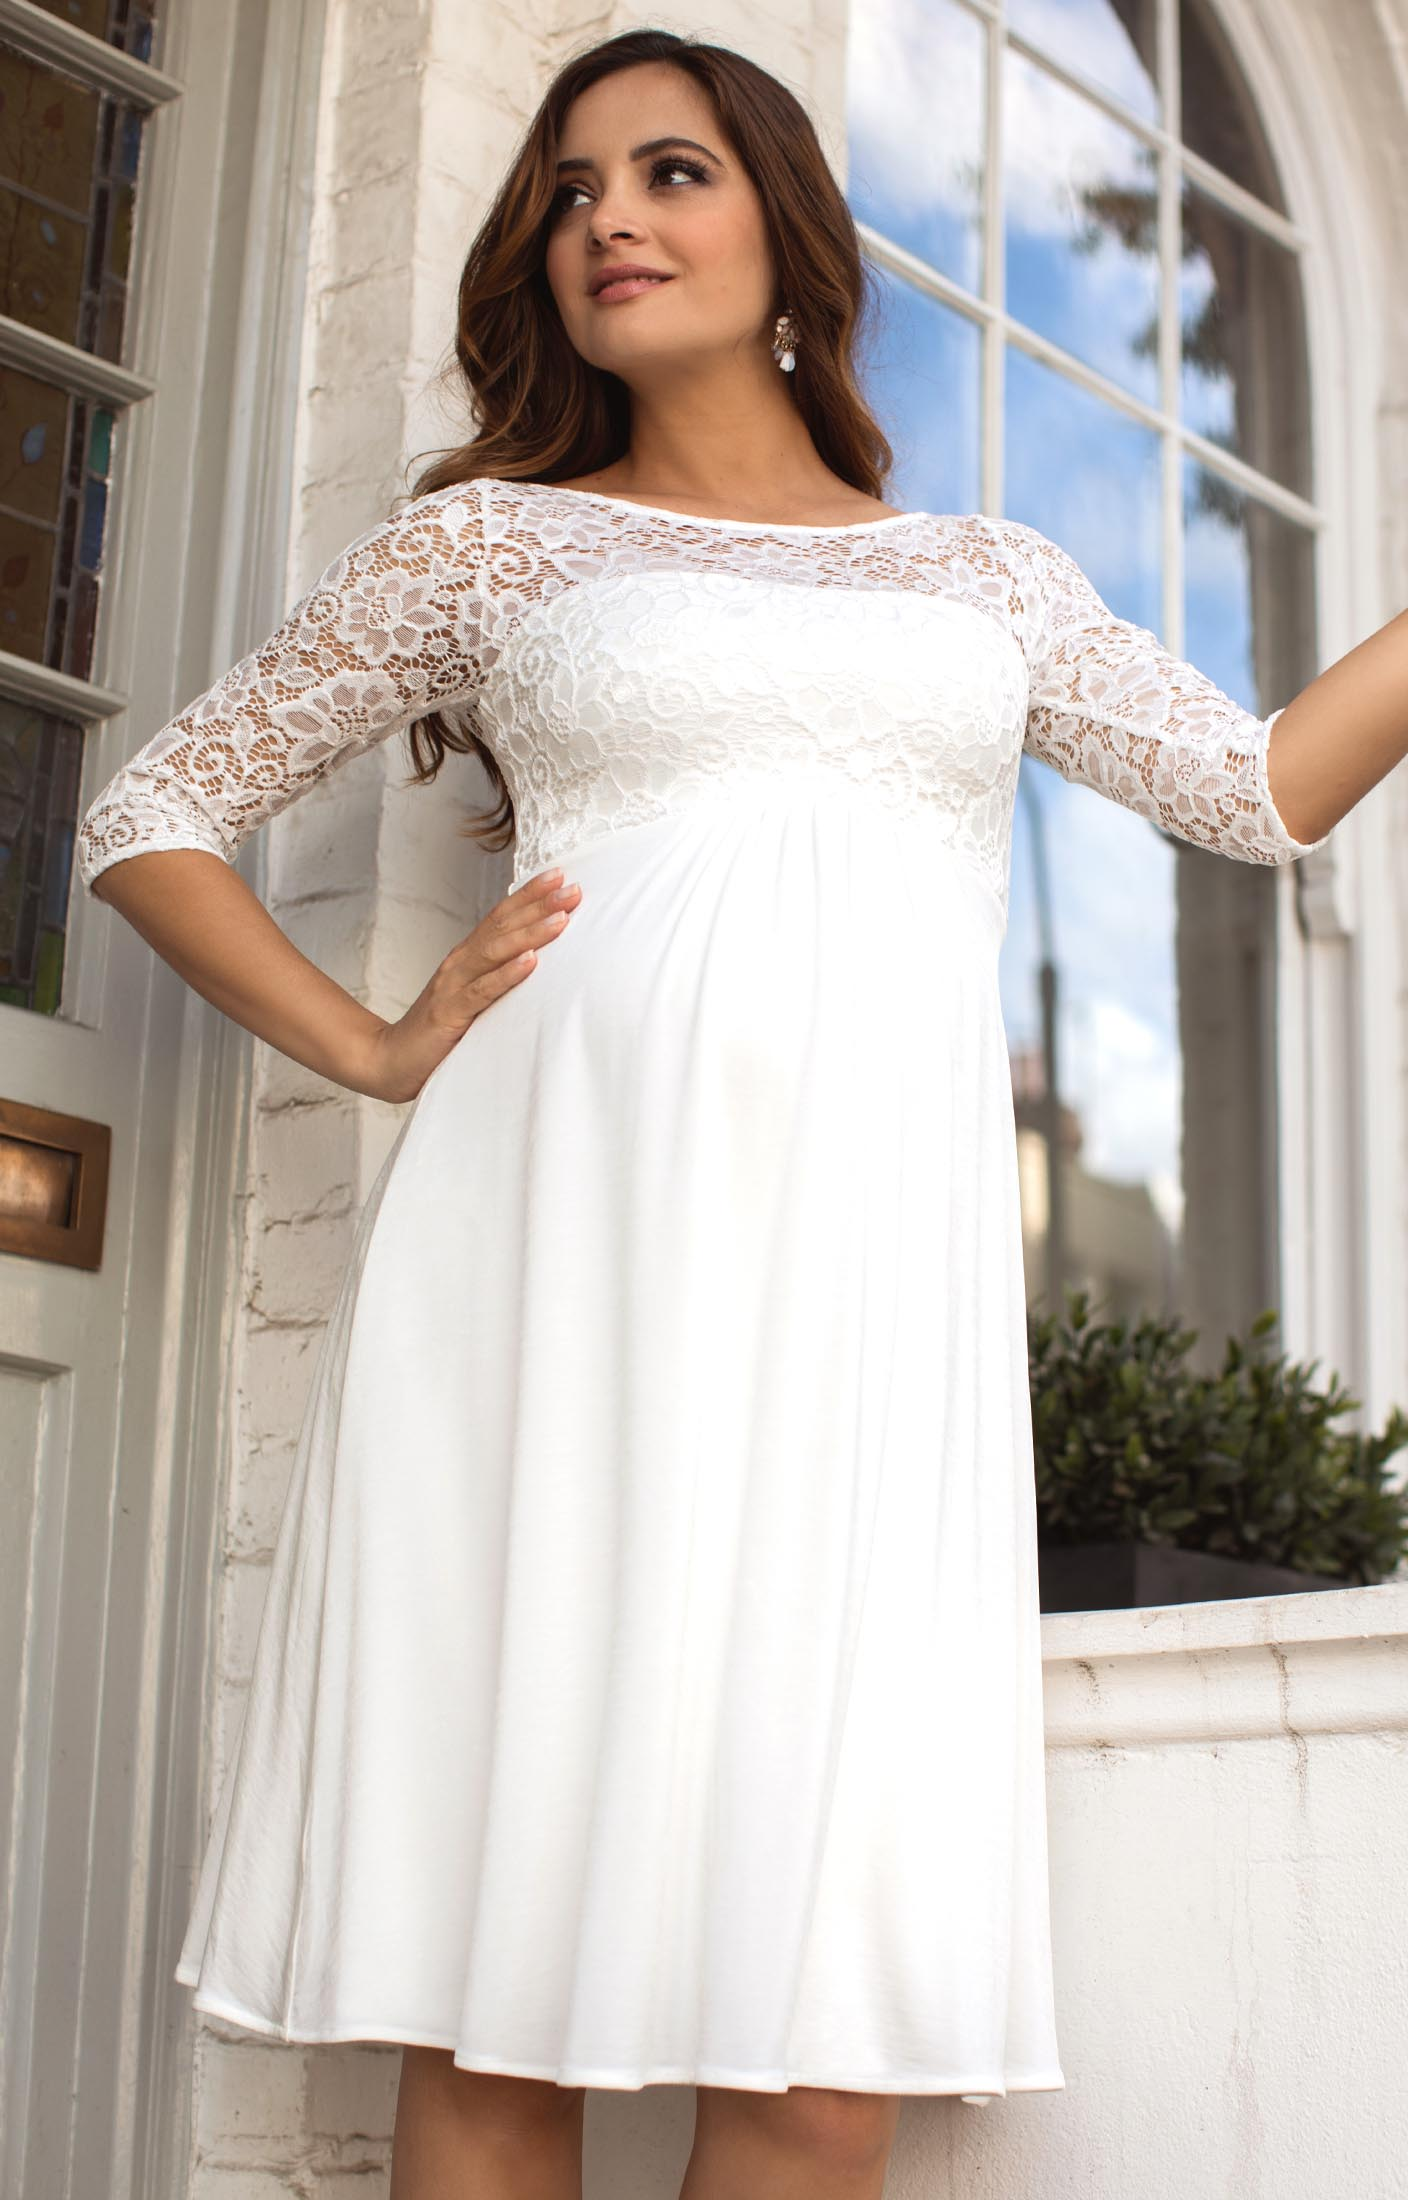 Lucia maternity wedding dress short ivory maternity for Short wedding dresses uk